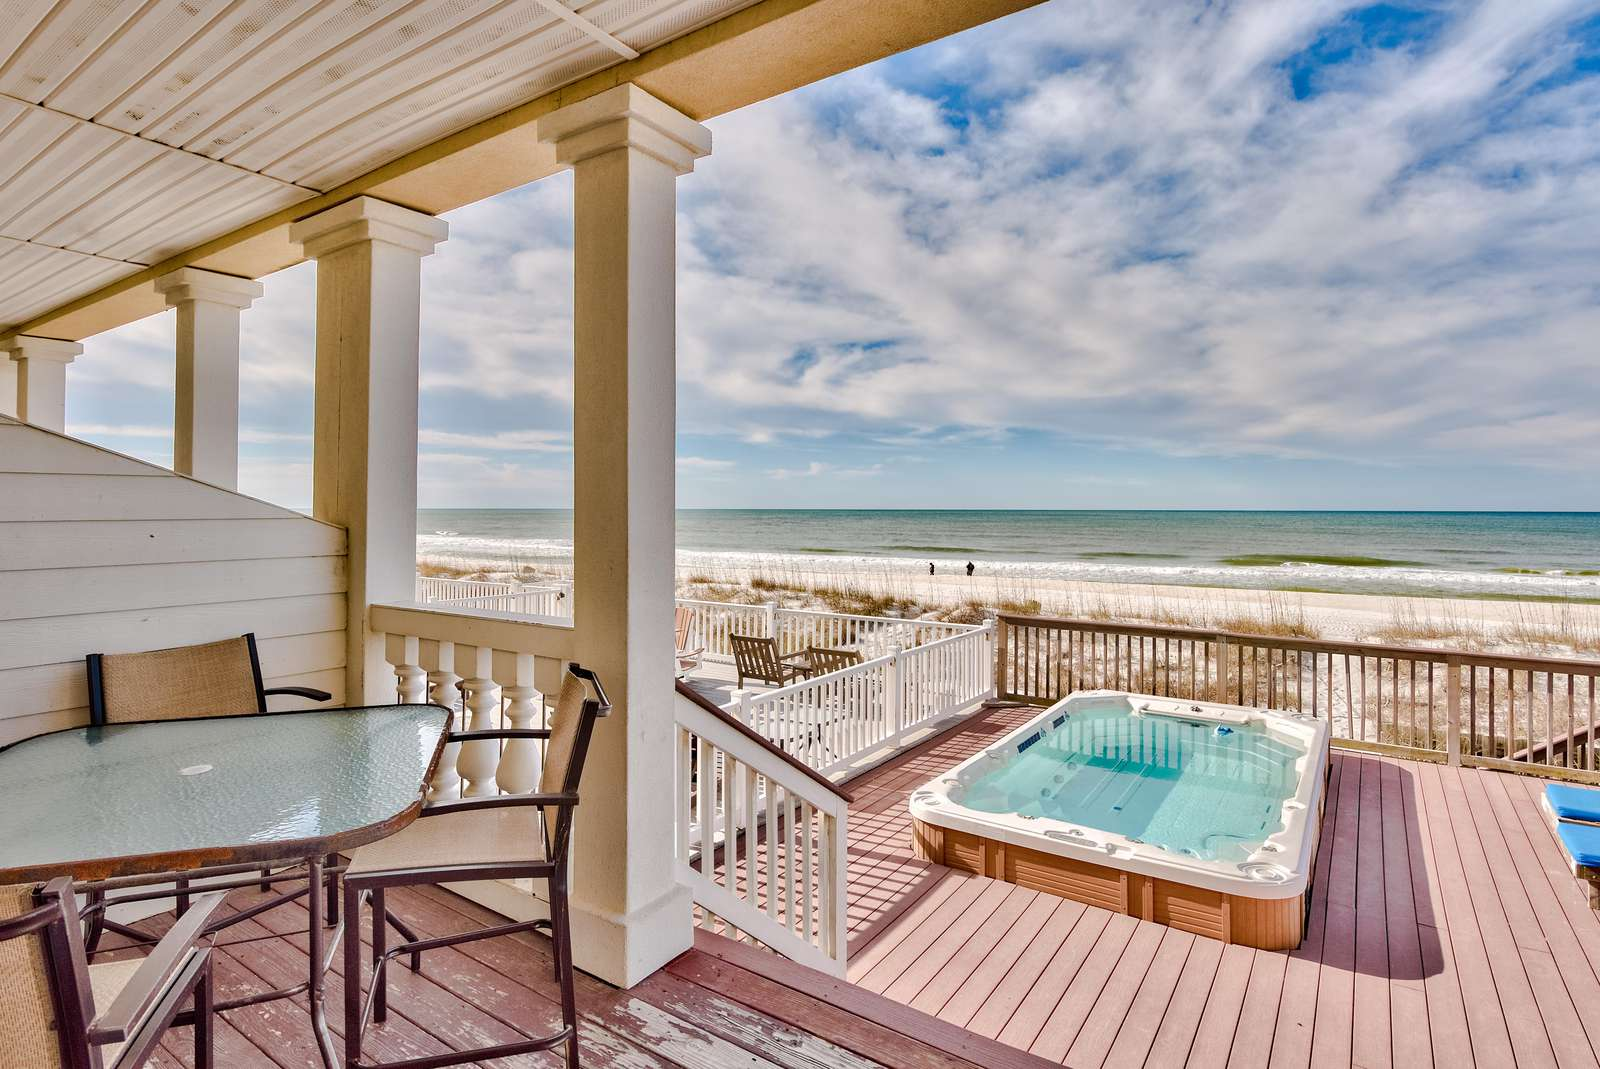 Bella Casa - 5 Bdrm Directly on the Beach & Private Plunge Pool!